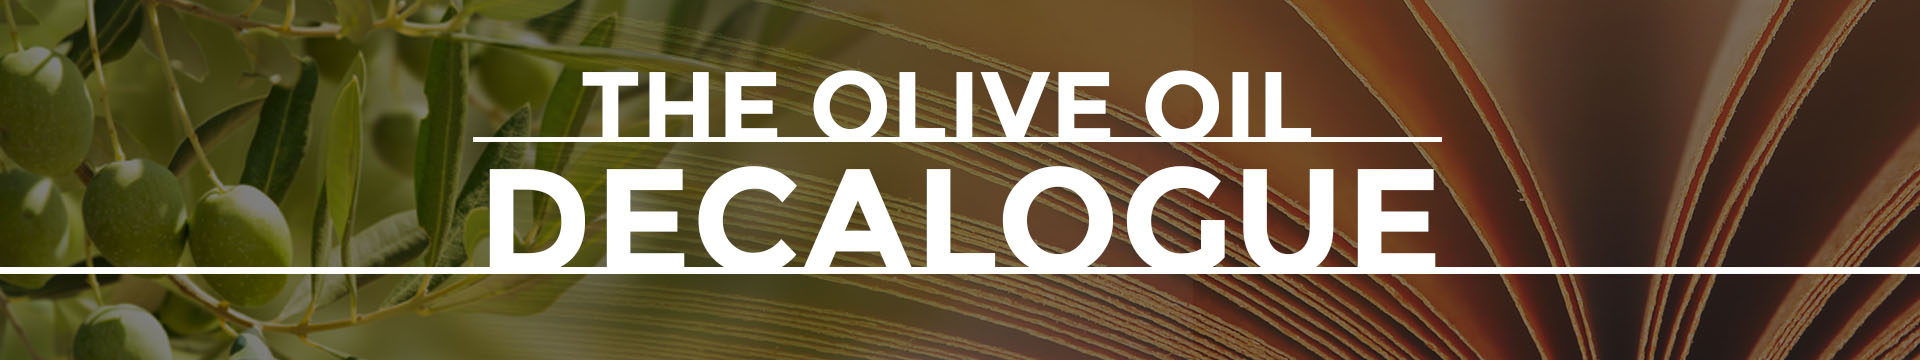 The olive oil Decalogue